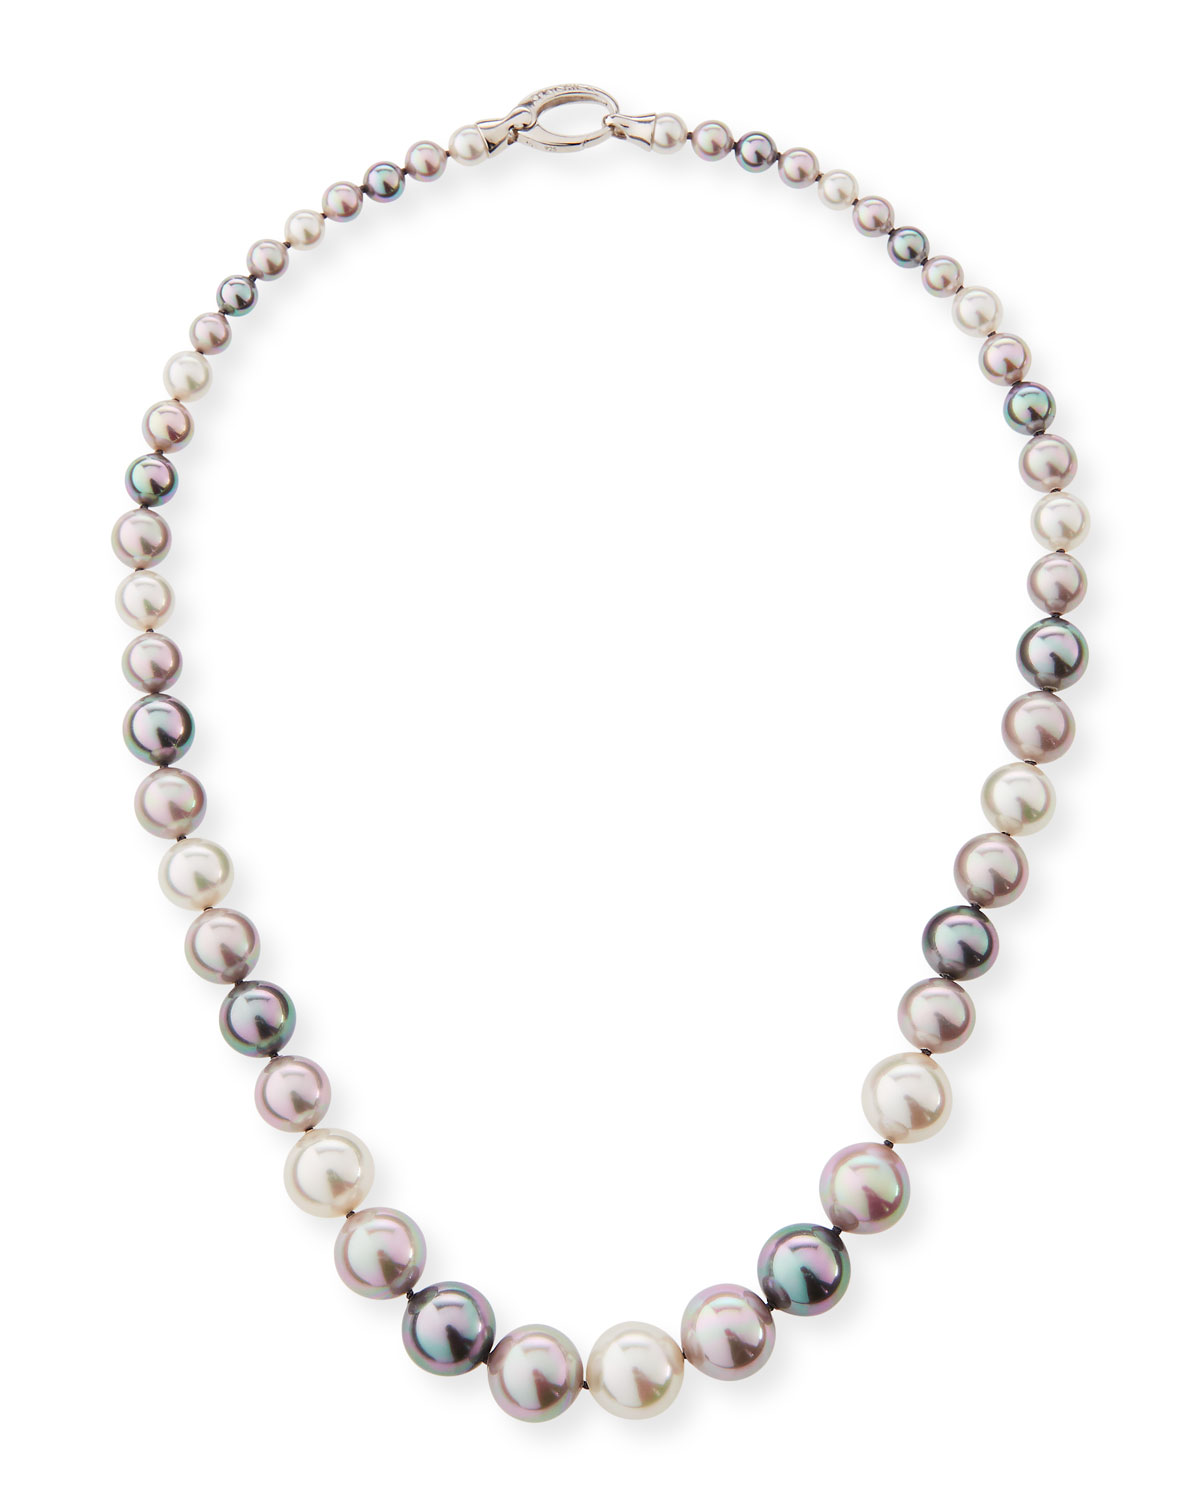 Graduated White, Gray & Nuage Pearl Necklace, 18